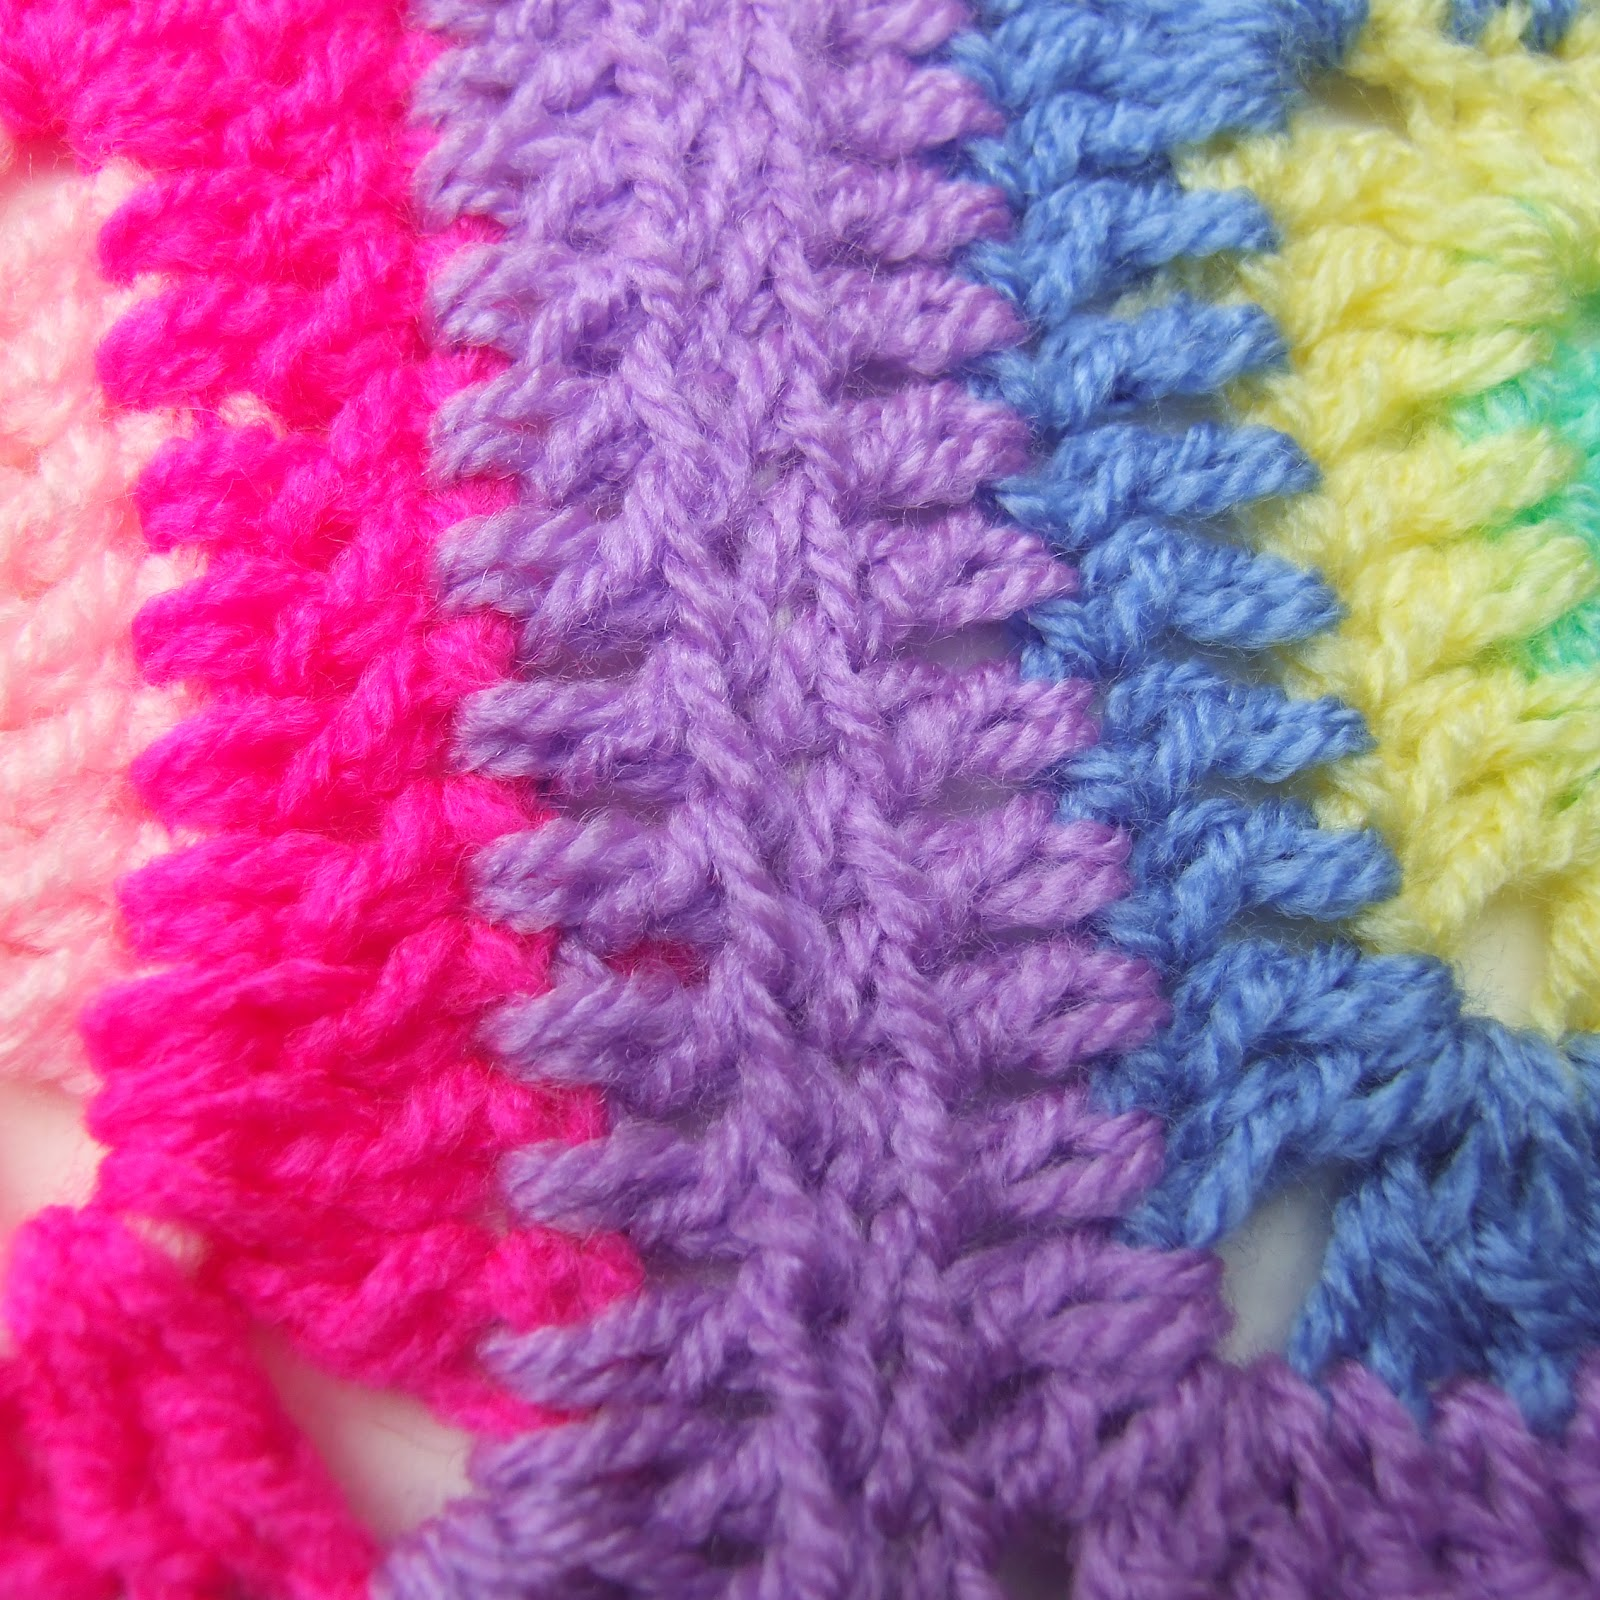 Crochet Stitches To Join Granny Squares : ... (Reverse Mattress Stitch) - Joining Crochet Squares - leonie morgan